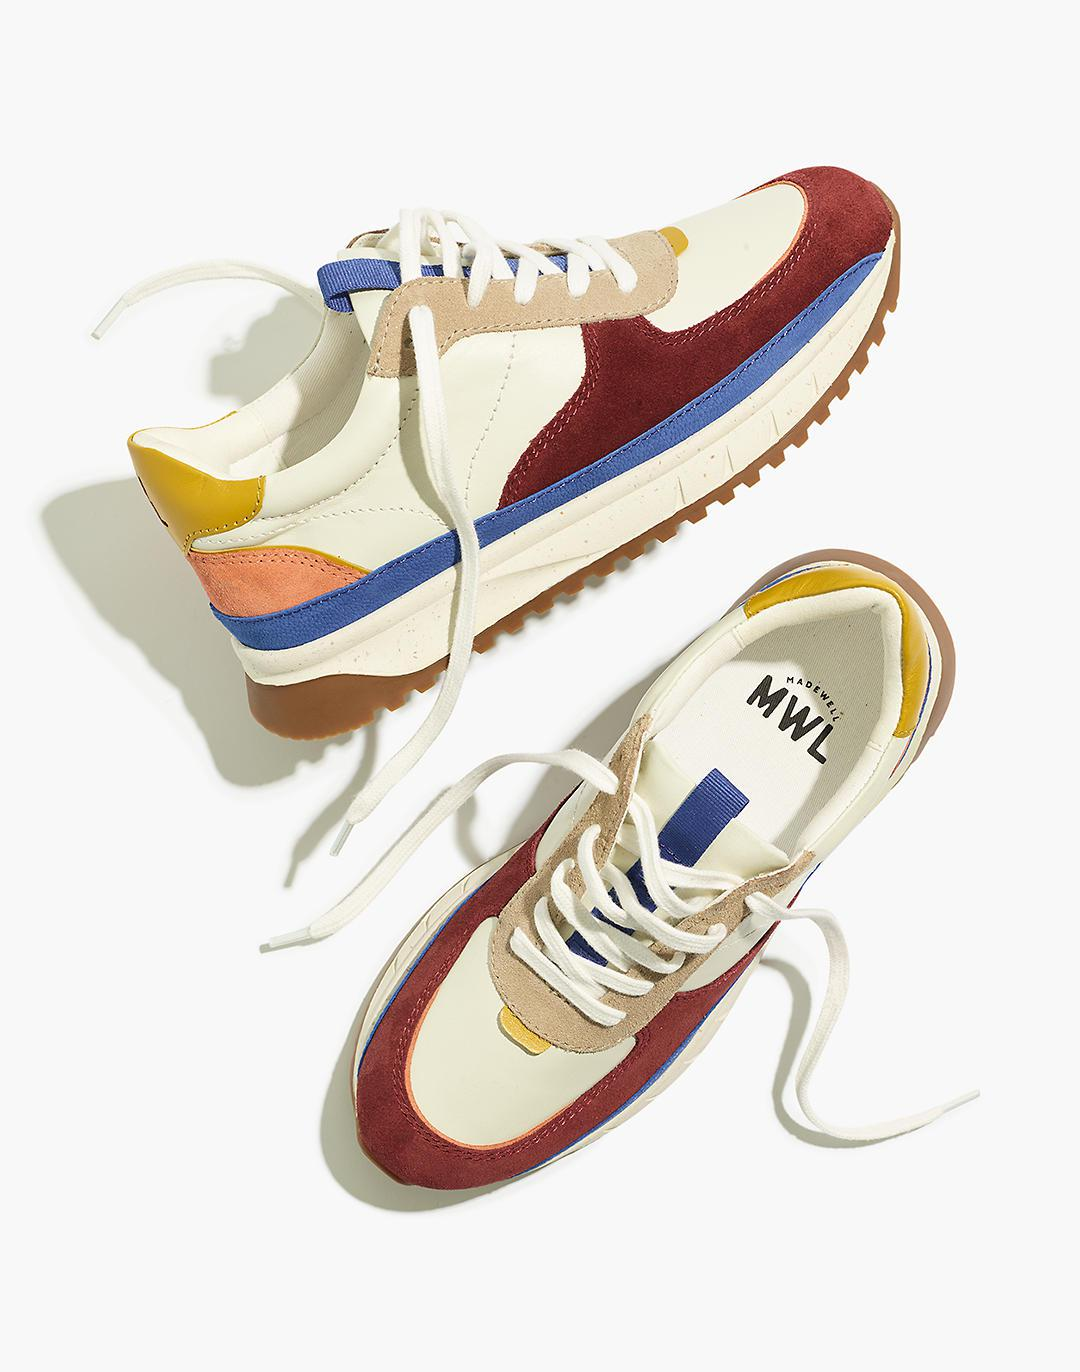 Kickoff Trainer Sneakers in Colorblock Leather and Suede